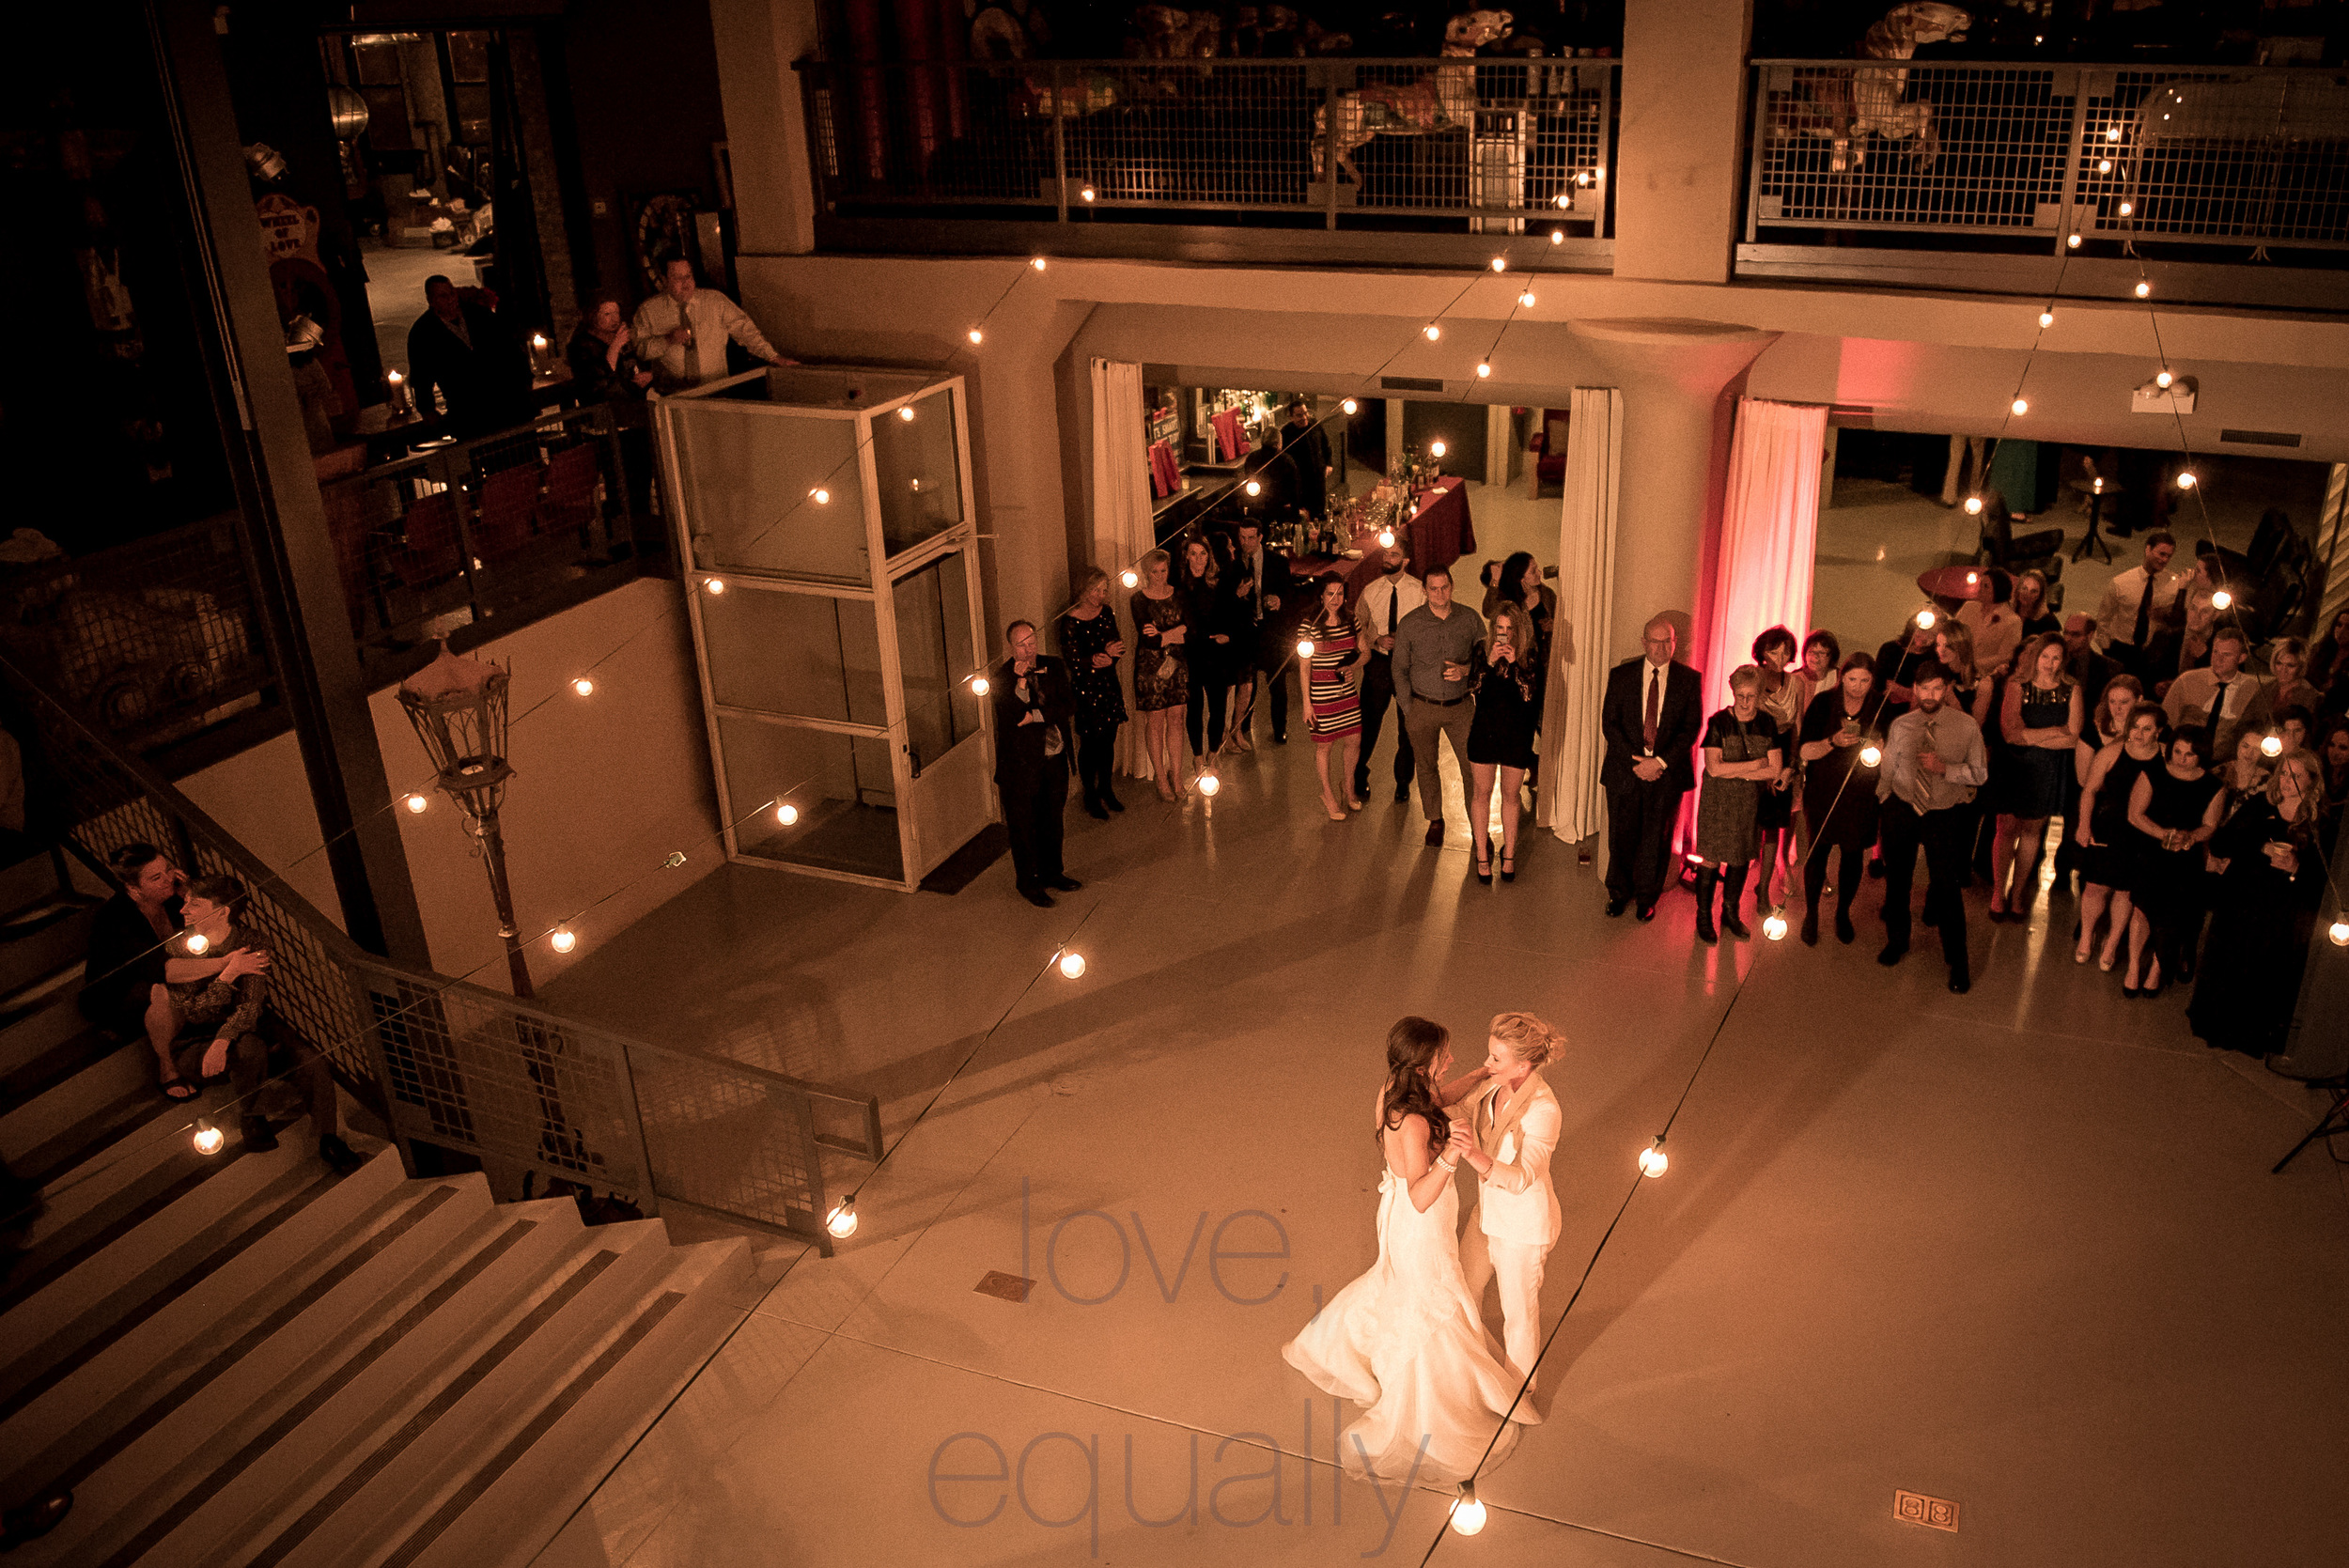 valentines day hotel monaco chicago gay marriage equality brides architecual artifacts glam two brides -024.jpg